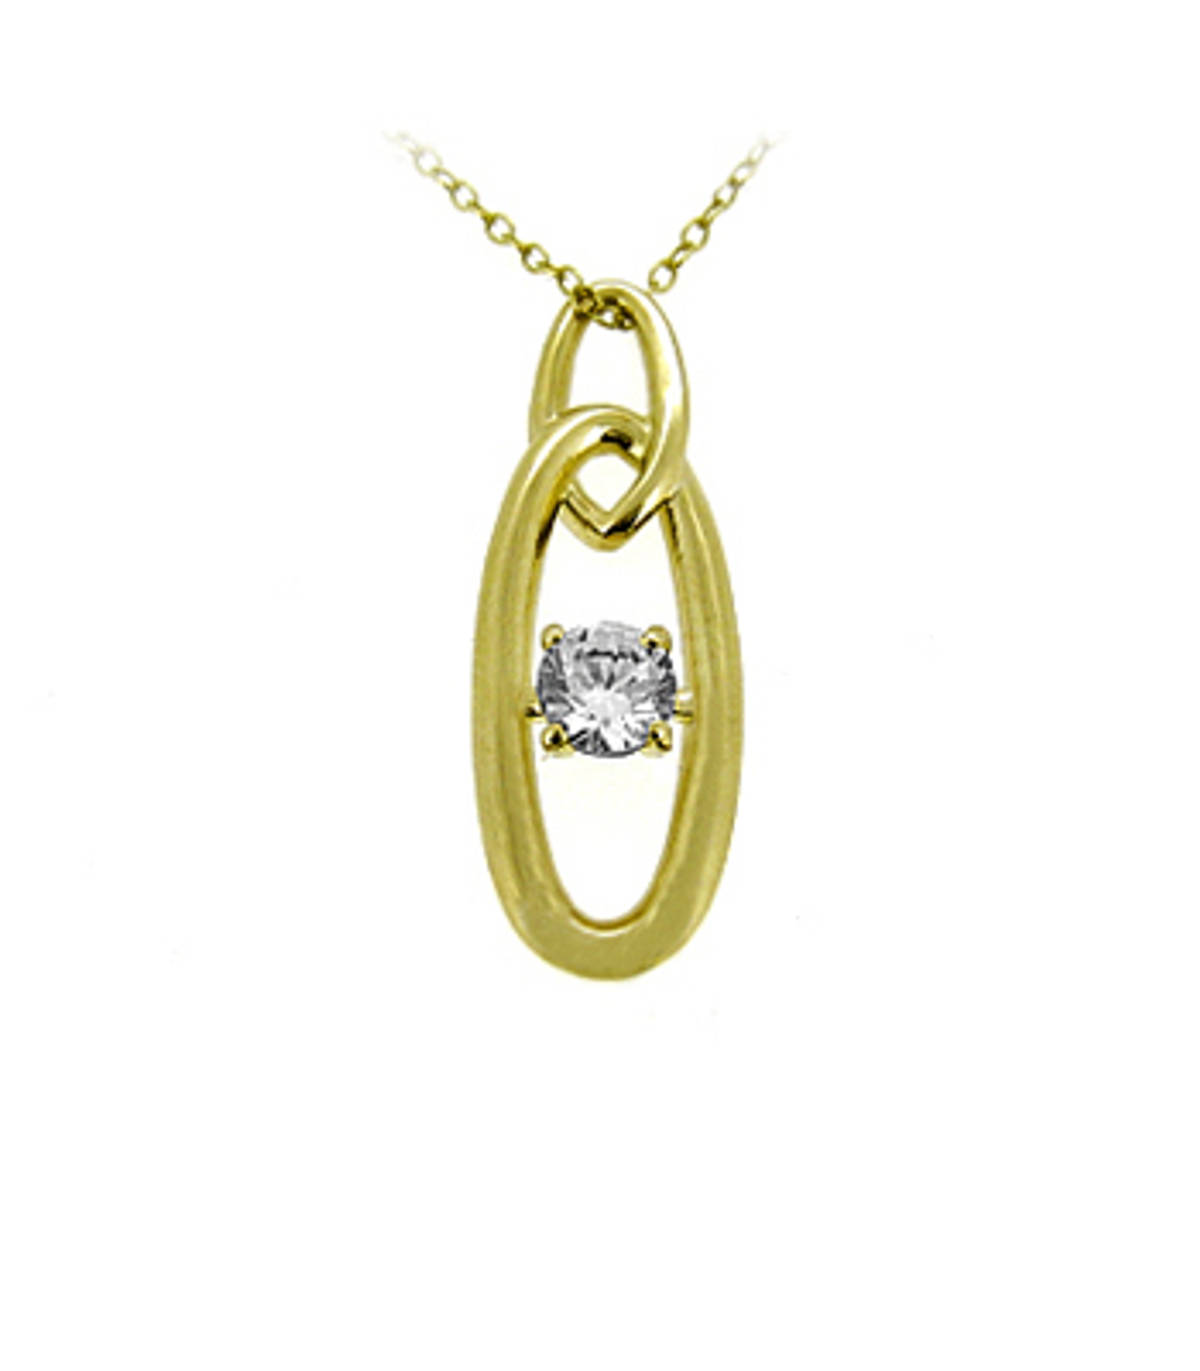 """9k yellow gold CZ pendant on 9k yellow gold 18"""" chain Metal: 9k yellow gold 9k yellow gold 18"""" chain Length  2.9cm Width  1cm Made in  Ireland"""